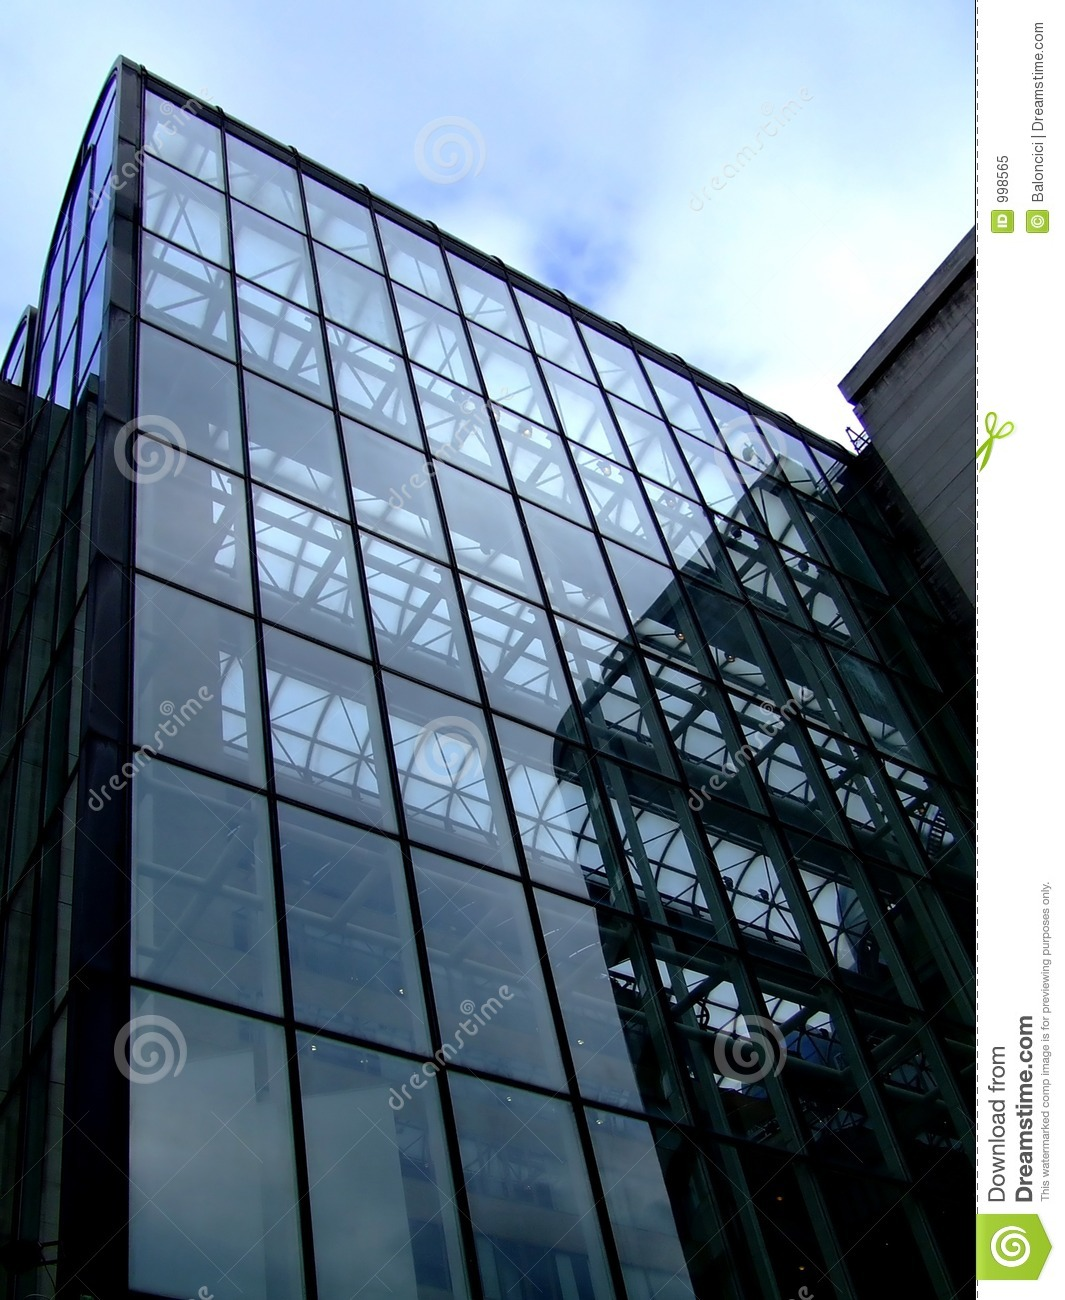 Glass Facade Of Office Building Royalty Free Stock Image: Glass Building Stock Image. Image Of Facade, Casement